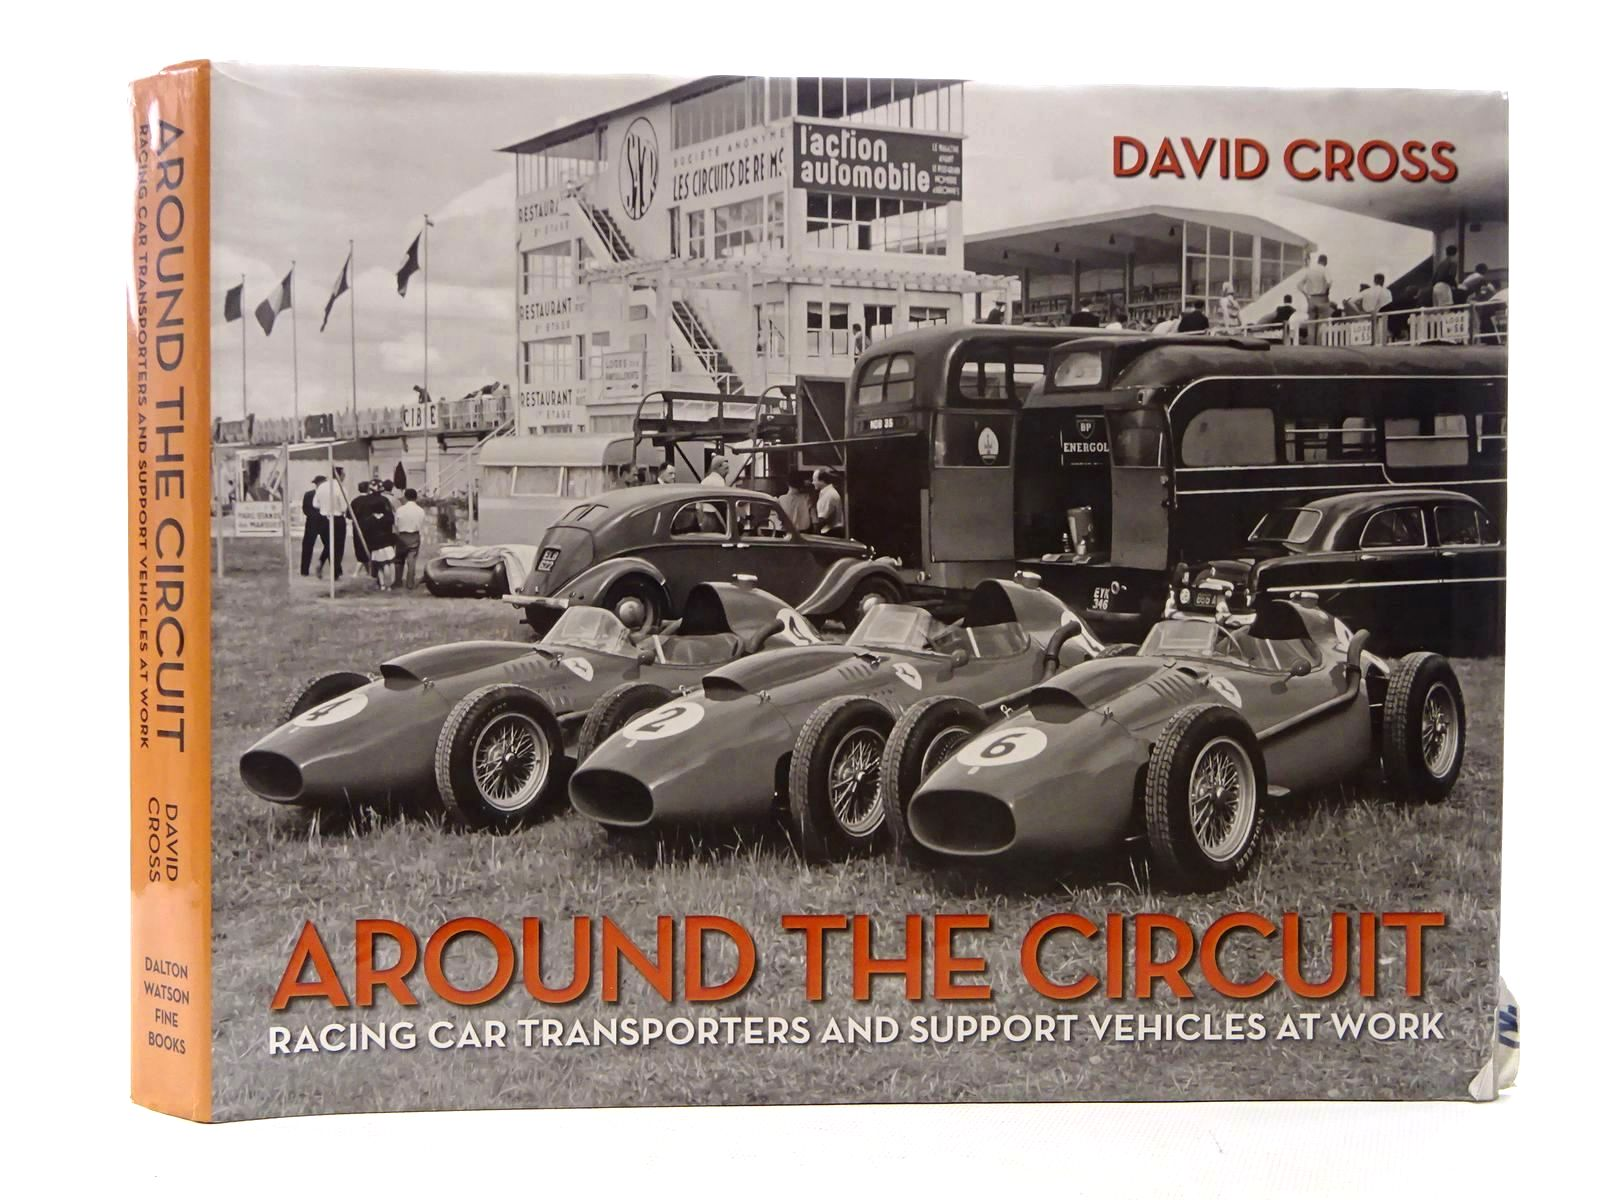 Photo of AROUND THE CIRCUIT written by Cross, David published by Dalton Watson Fine Books (STOCK CODE: 1610519)  for sale by Stella & Rose's Books